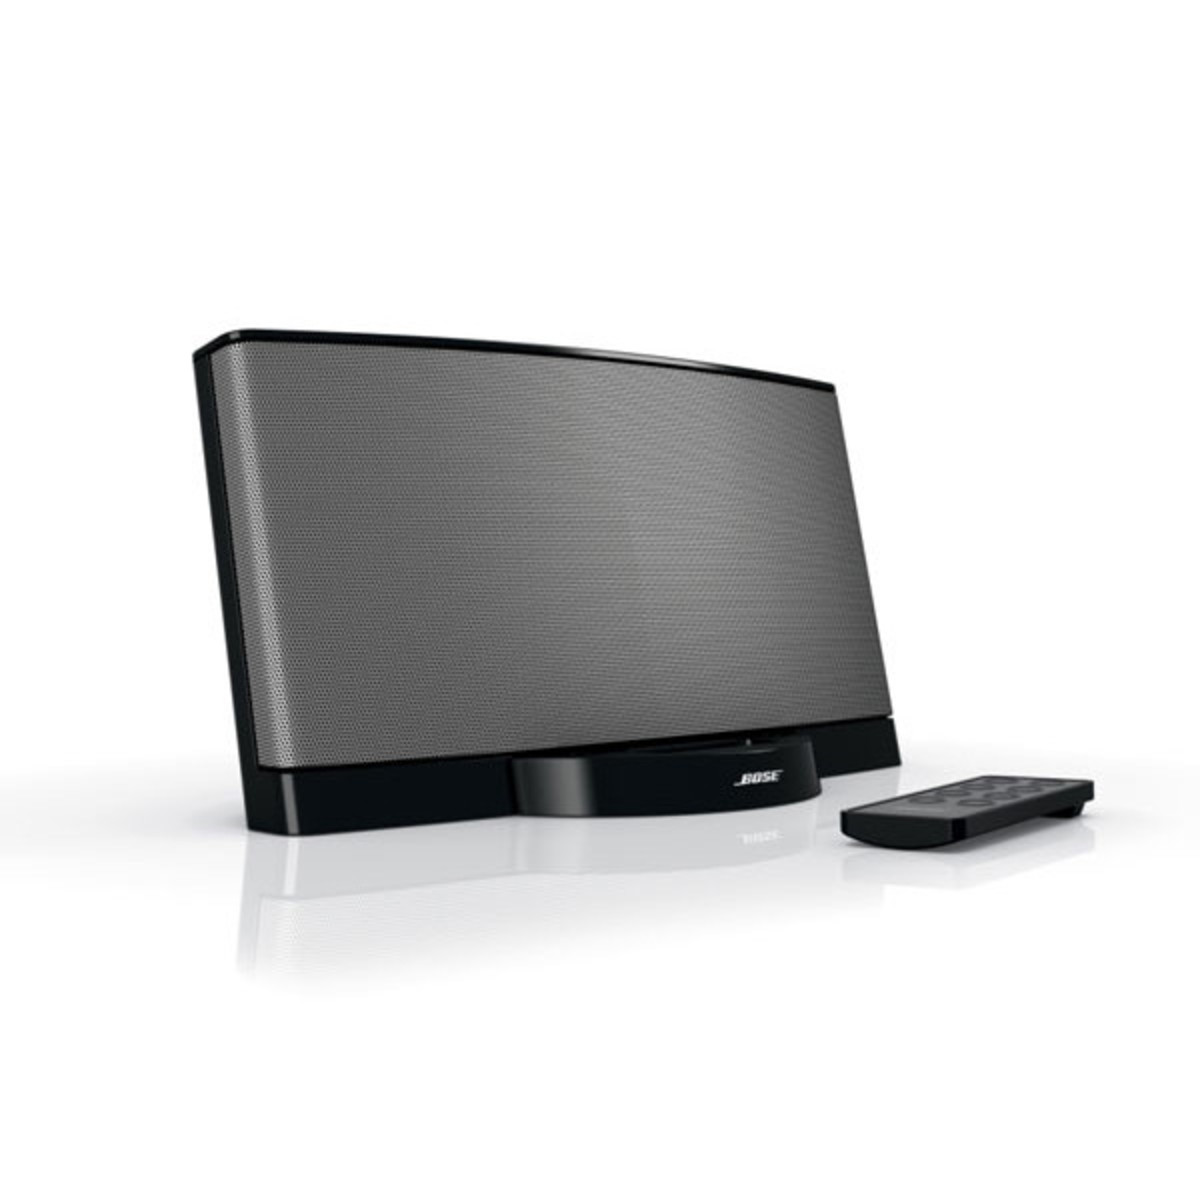 bose sounddock iii digital music system black at. Black Bedroom Furniture Sets. Home Design Ideas